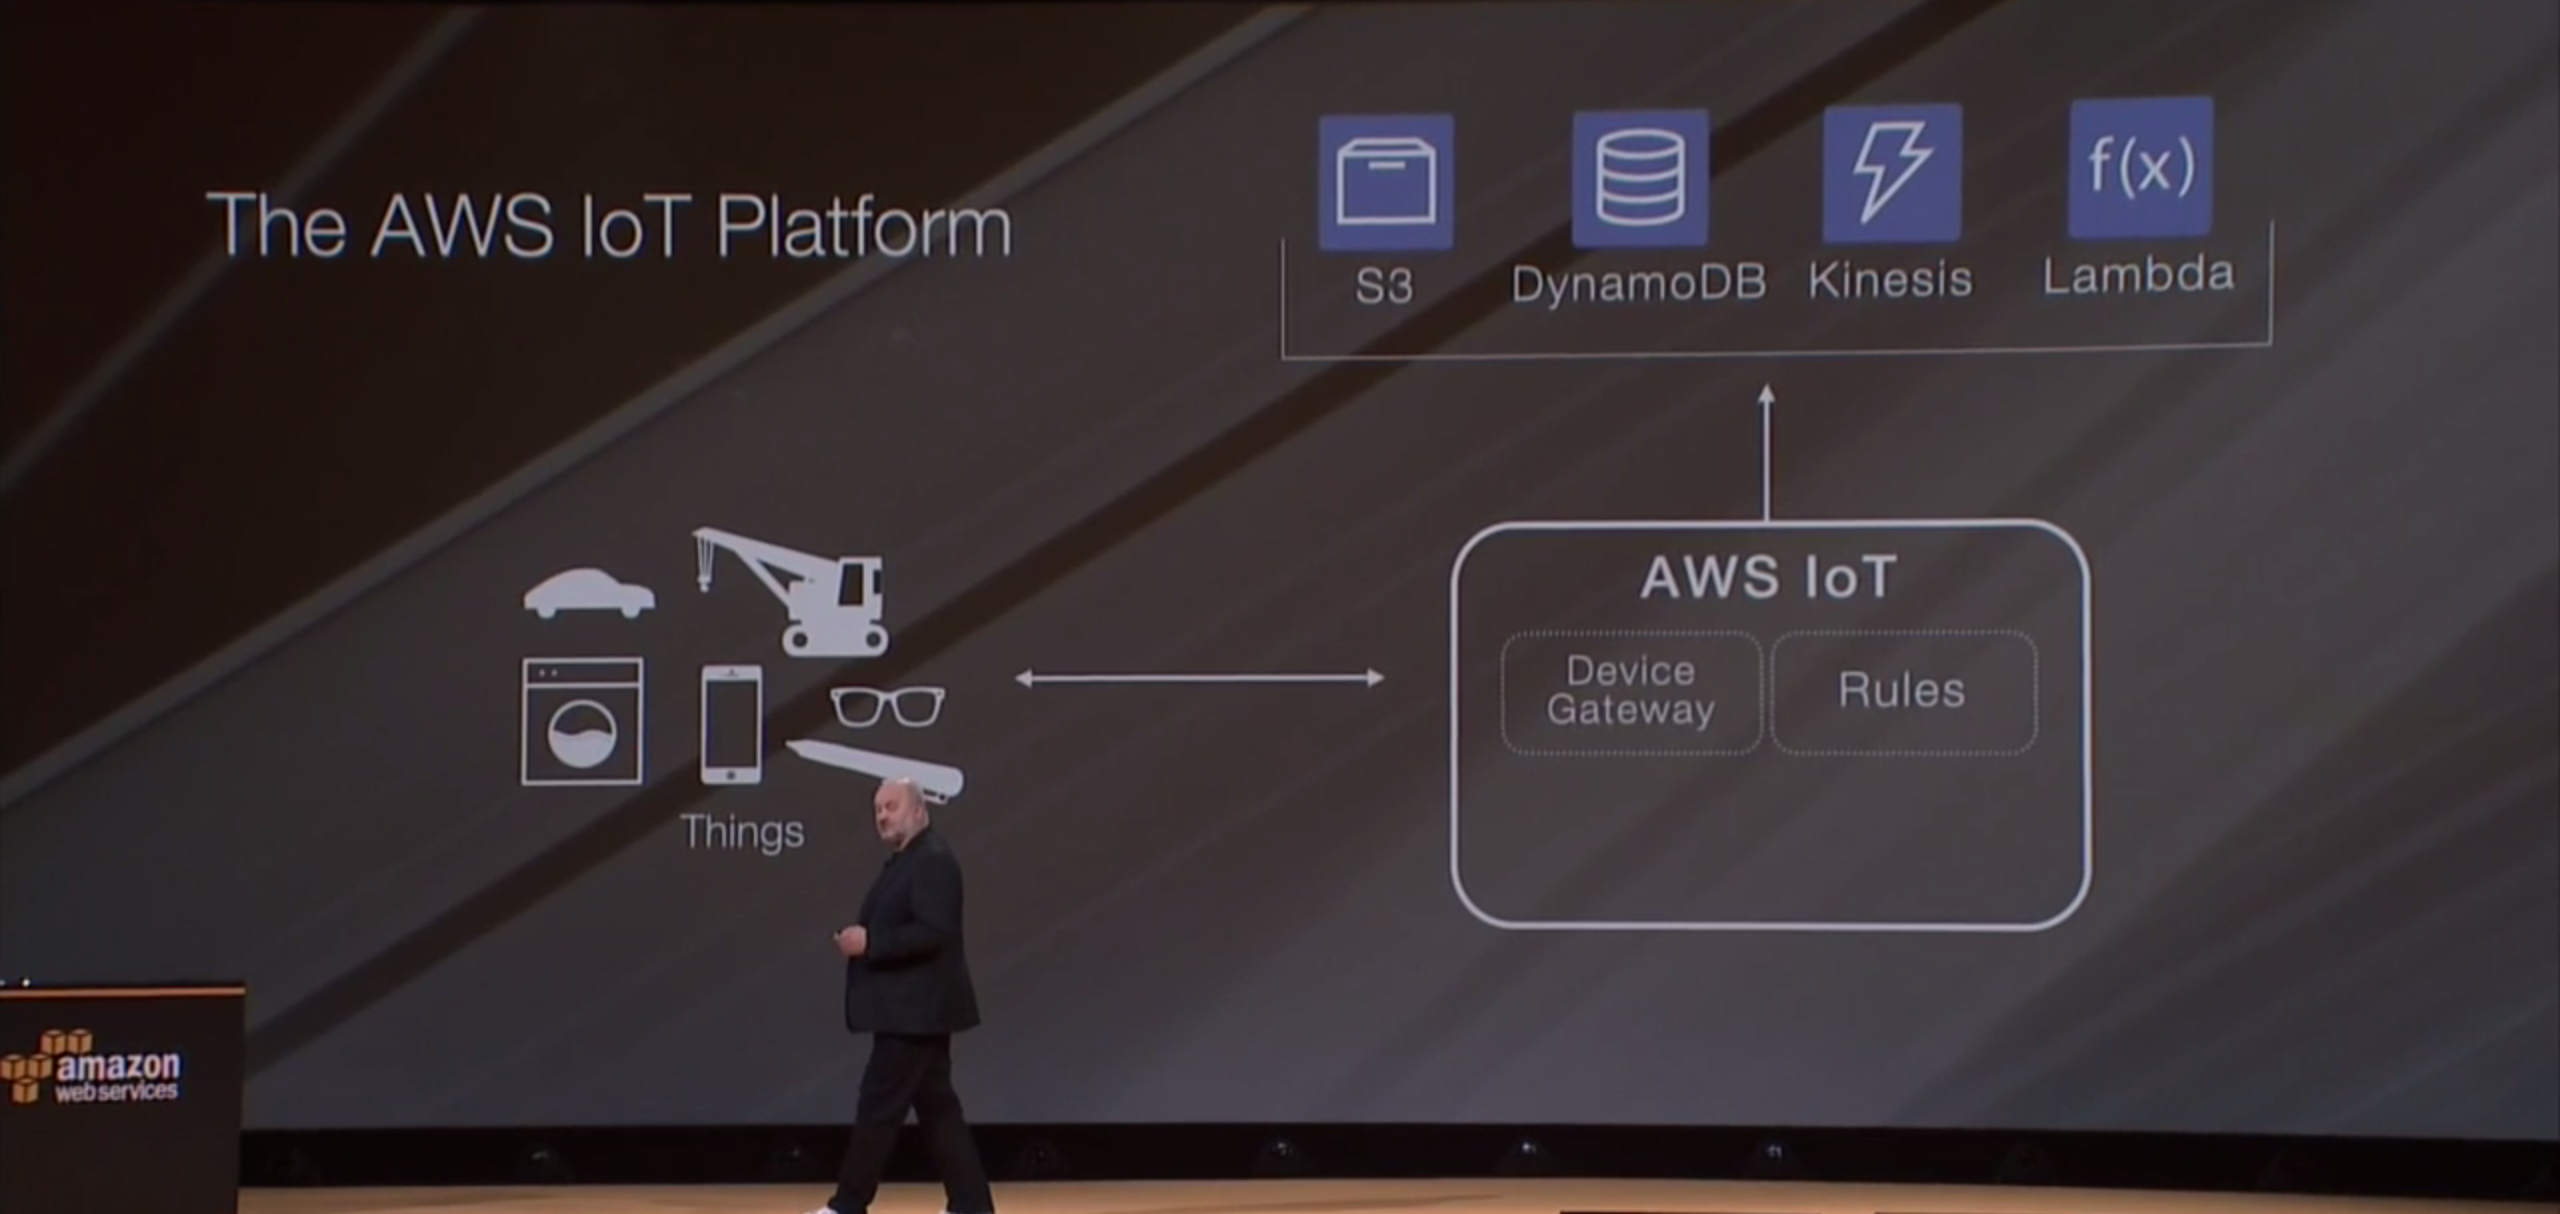 Amazon chief technology officer Werner Vogels talks about how AWS IoT can integrate with other AWS services at the AWS re:Invent conference in Las Vegas on Oct. 8.